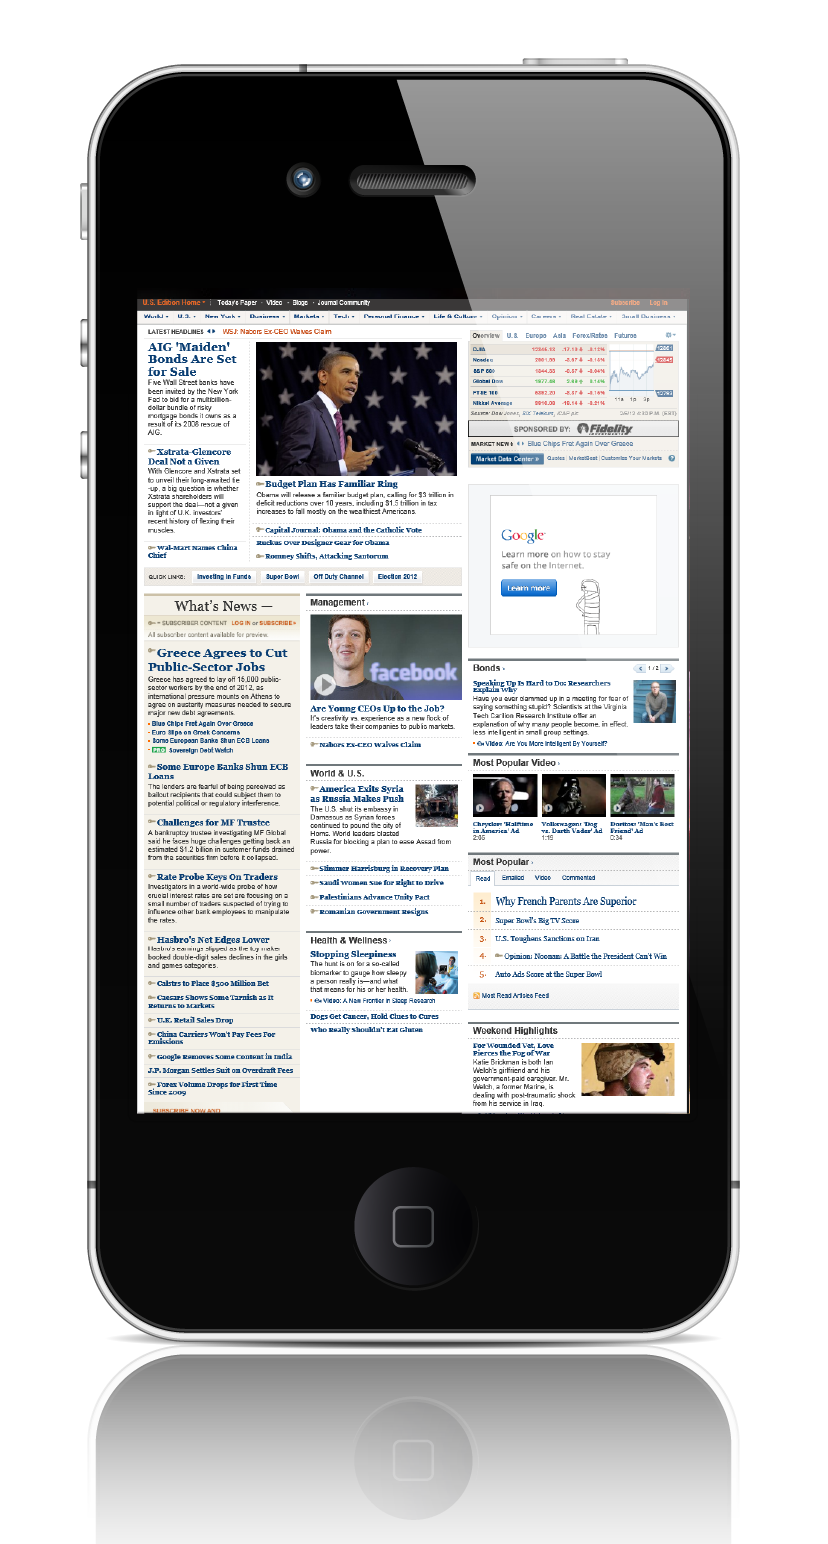 wall street journal web page